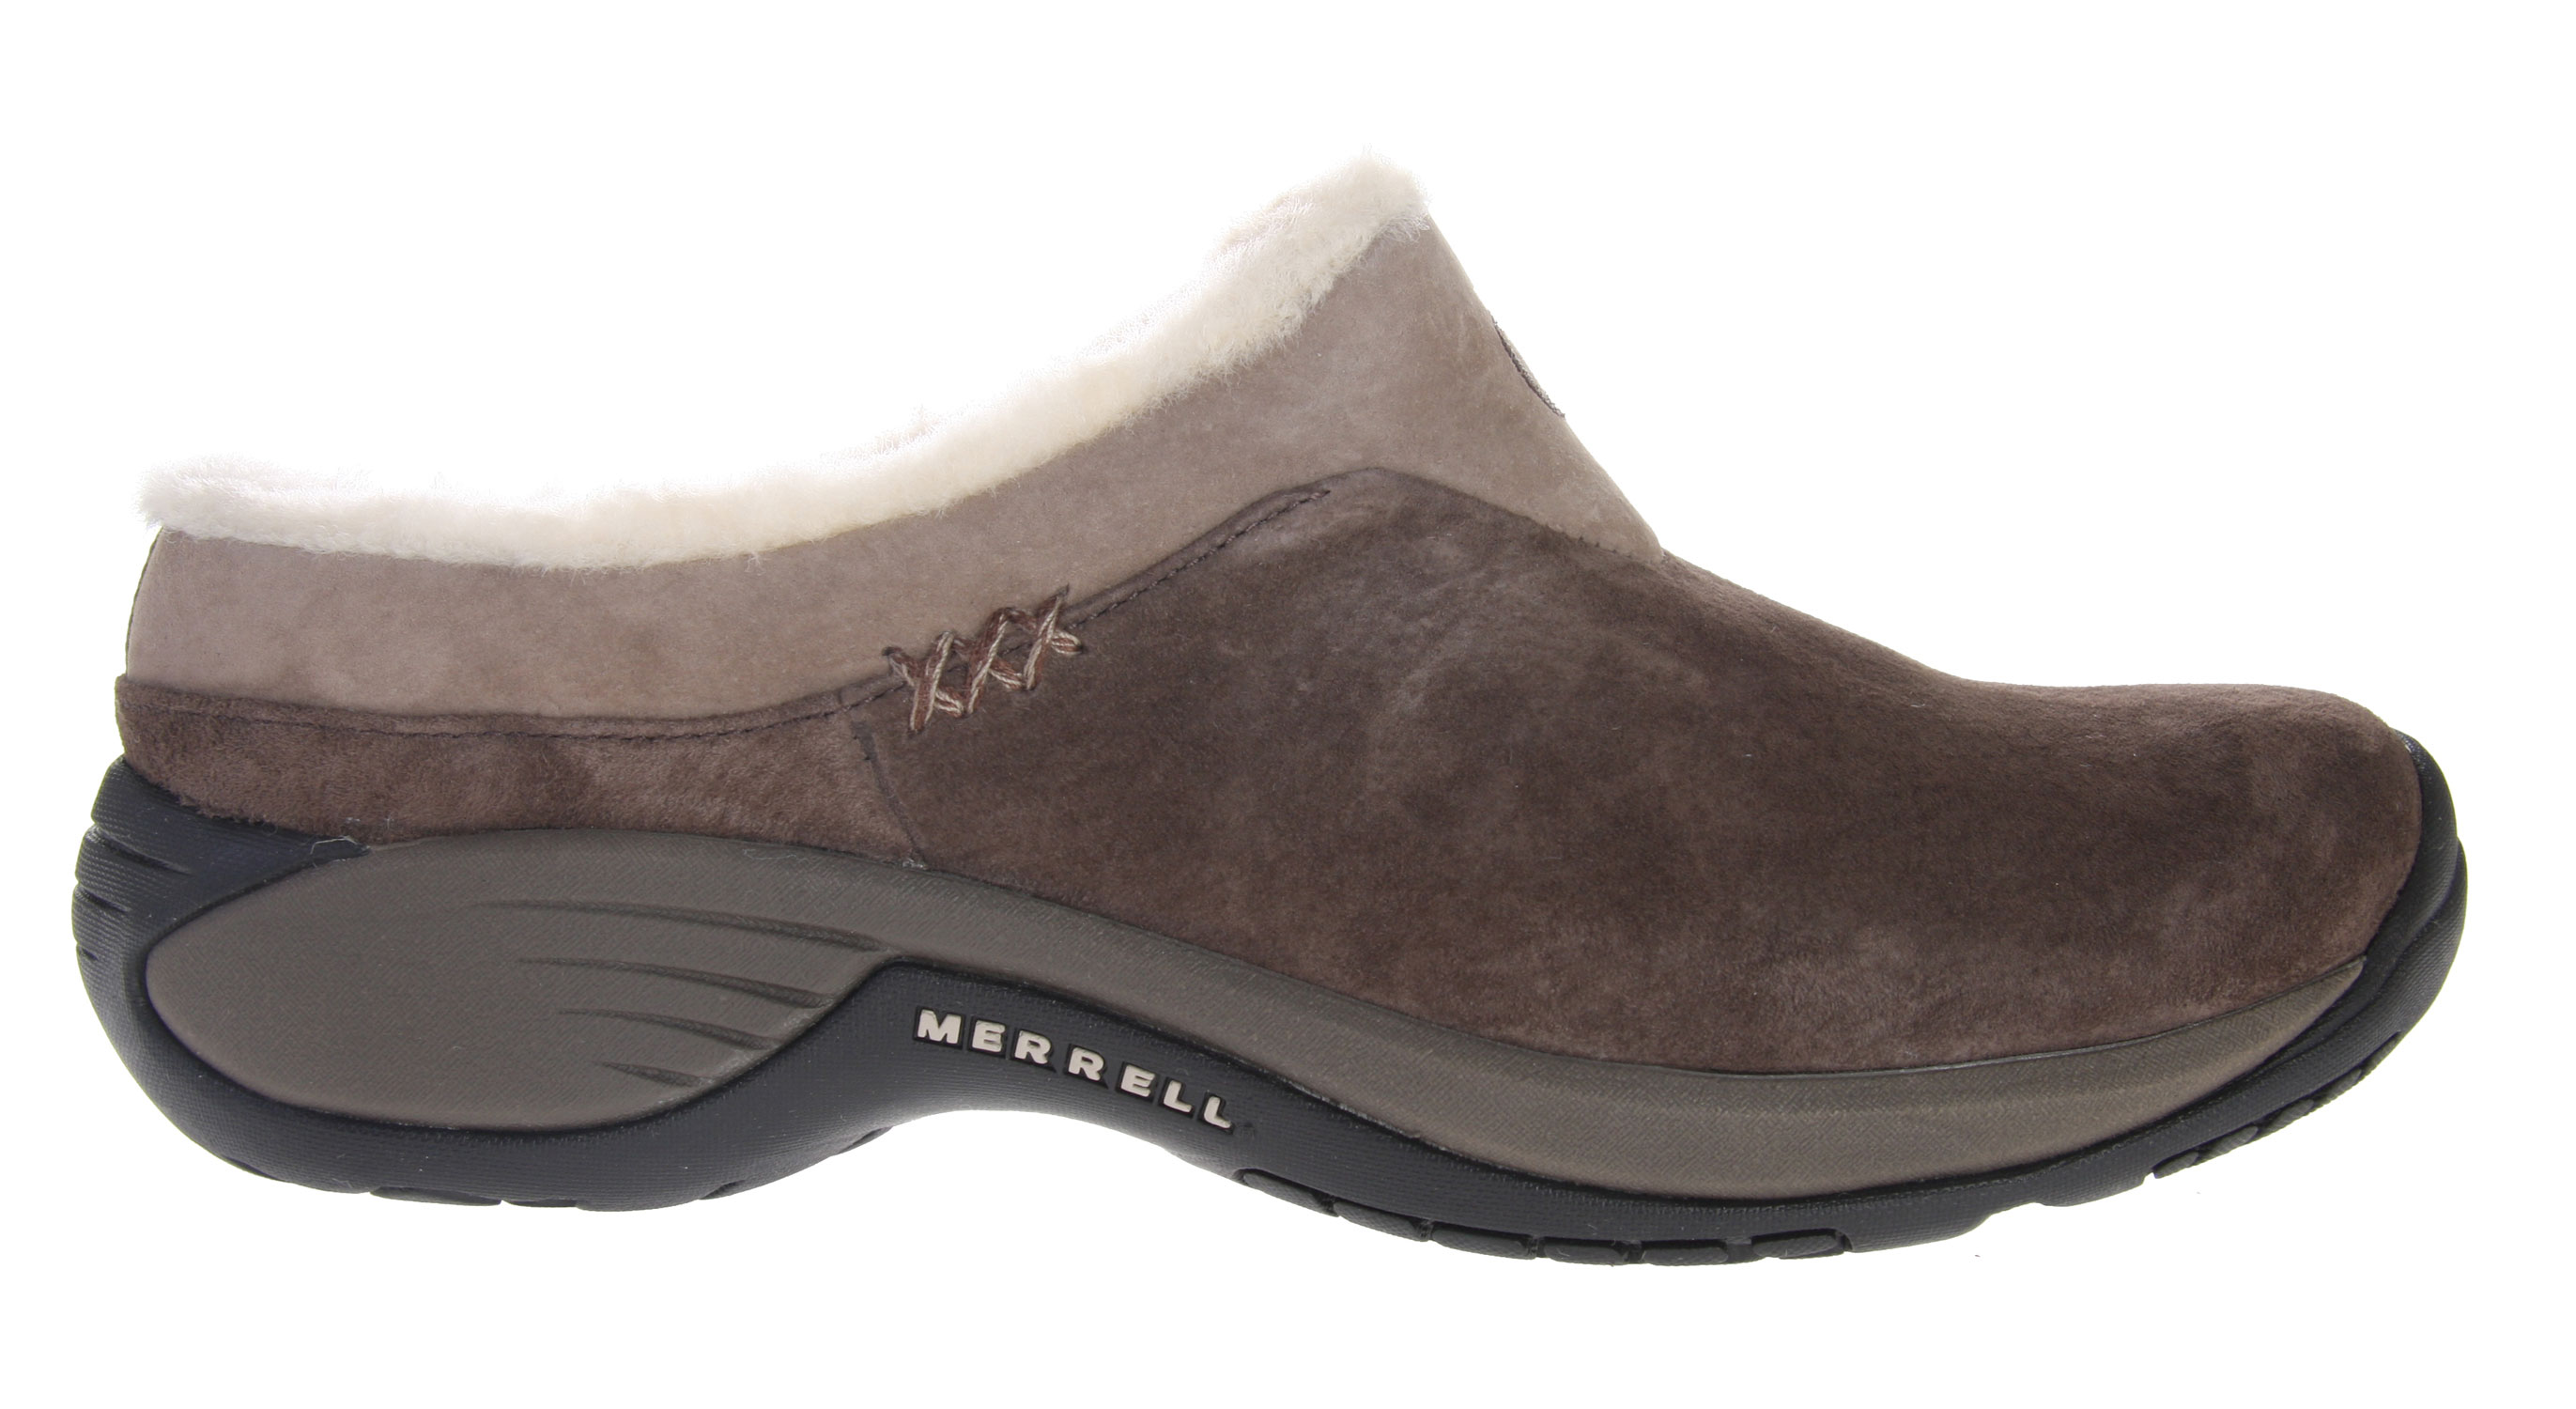 Encore Ice. An upgrade to the Encore Chill, Merrell added some classy collar accents to the sheepskin lined upper, and used lightweight cement construction that holds up to the miles you''ll log in. The wool fleece footbed outperforms anything else for warmth and moisture control underfoot.Key Features of the Merrell Encore Ice Shoes: Cement construction provides lightweight durability Full grain, pig suede or nubuck leather upper Sheepskin lining Wool Fleece Footbed Molded nylon arch shank QForm Comfort EVA Midsole provides women''s specific stride-sequenced cushioning Merrell Air Cushion in the heel absorbs shock and add stability Merrell Encore 2 Sole/Sticky Rubber Weight: 1 lb. 5 ozs. - $110.00